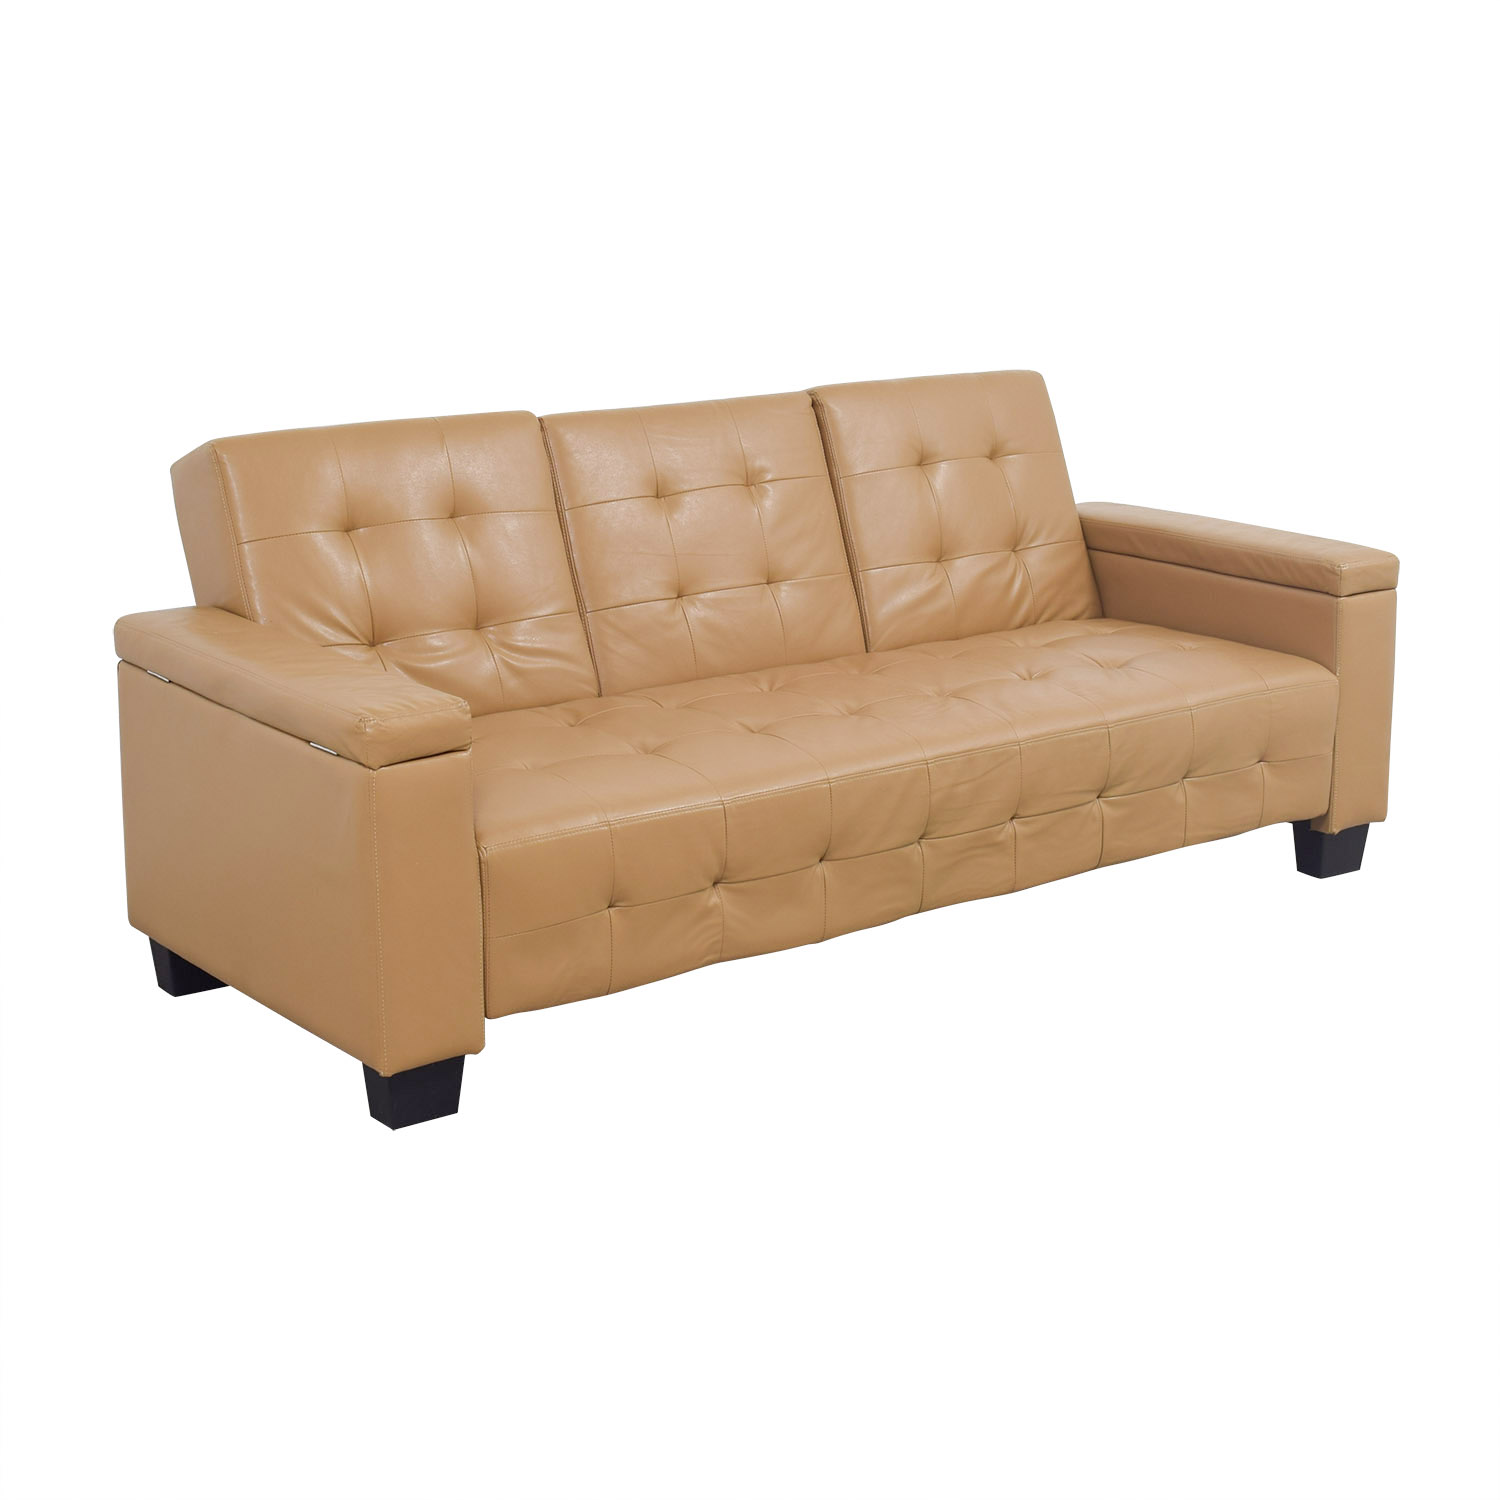 Sofa Leather Workshop: Tufted Khaki Leather Sofa Futon / Sofas